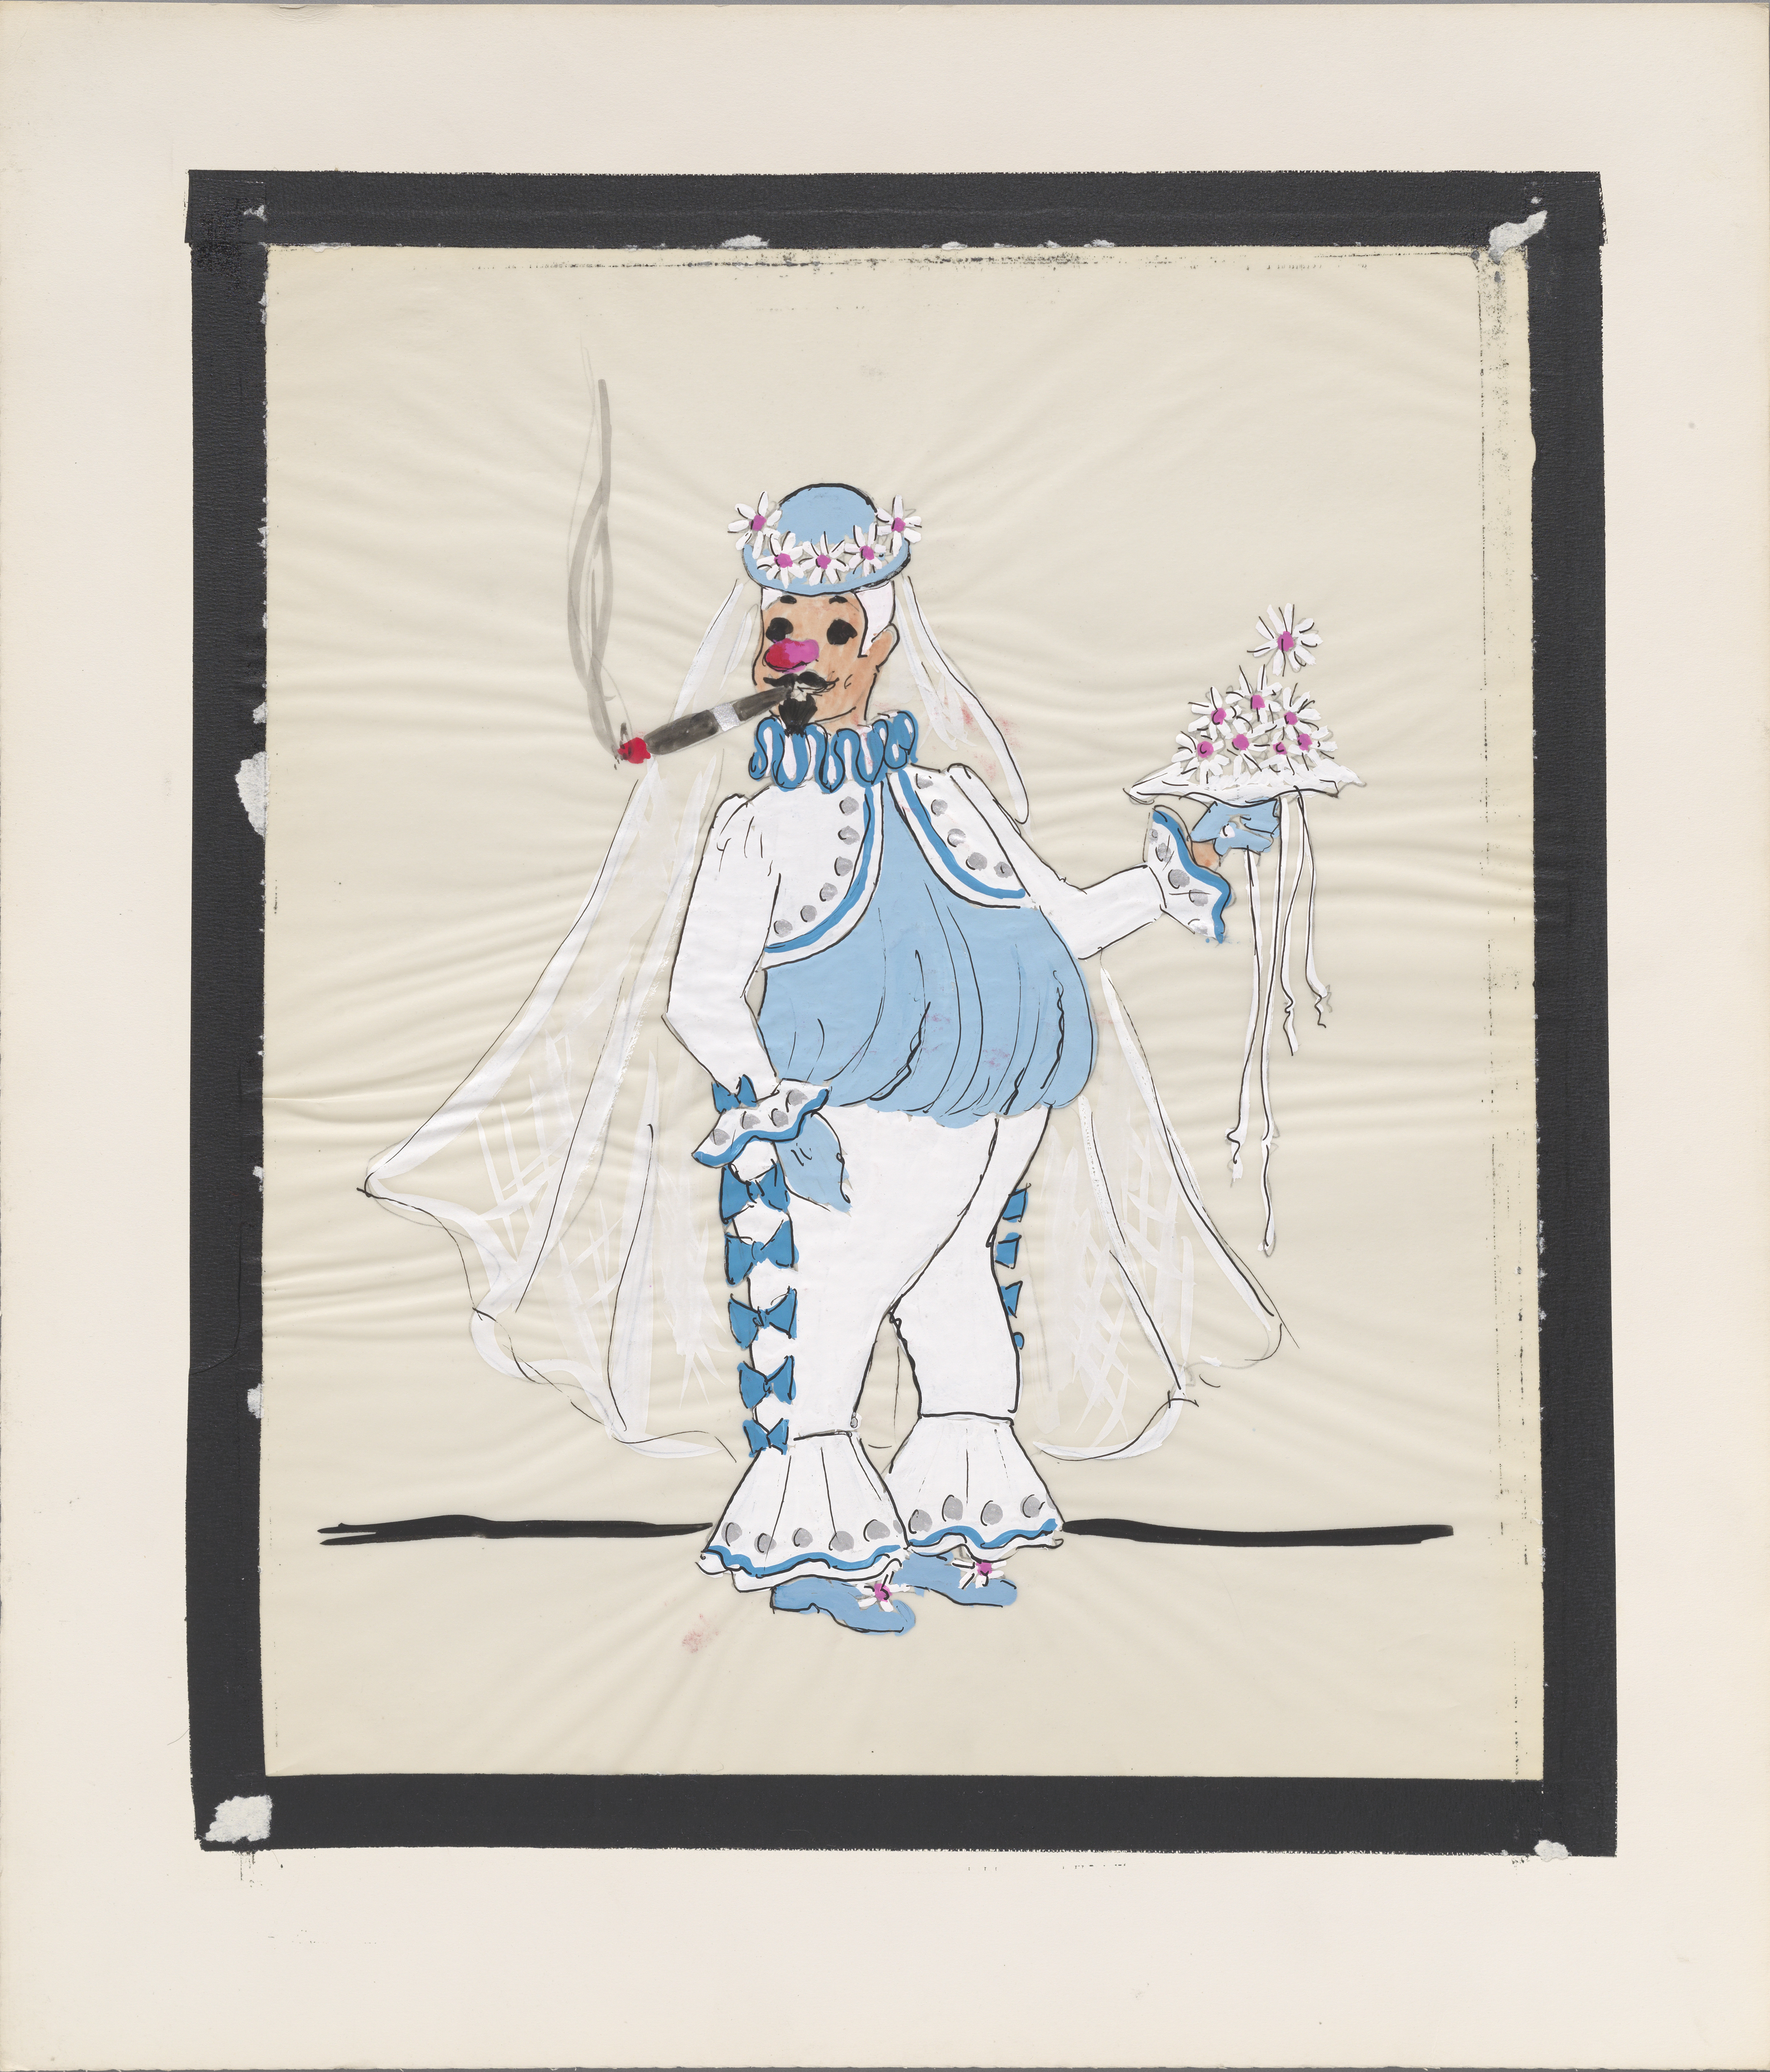 Hand-drawn sketch. Costume design depicting an androgynous clown figure wearing a bolero jacket with a veil and a bouquet smoking a cigar.